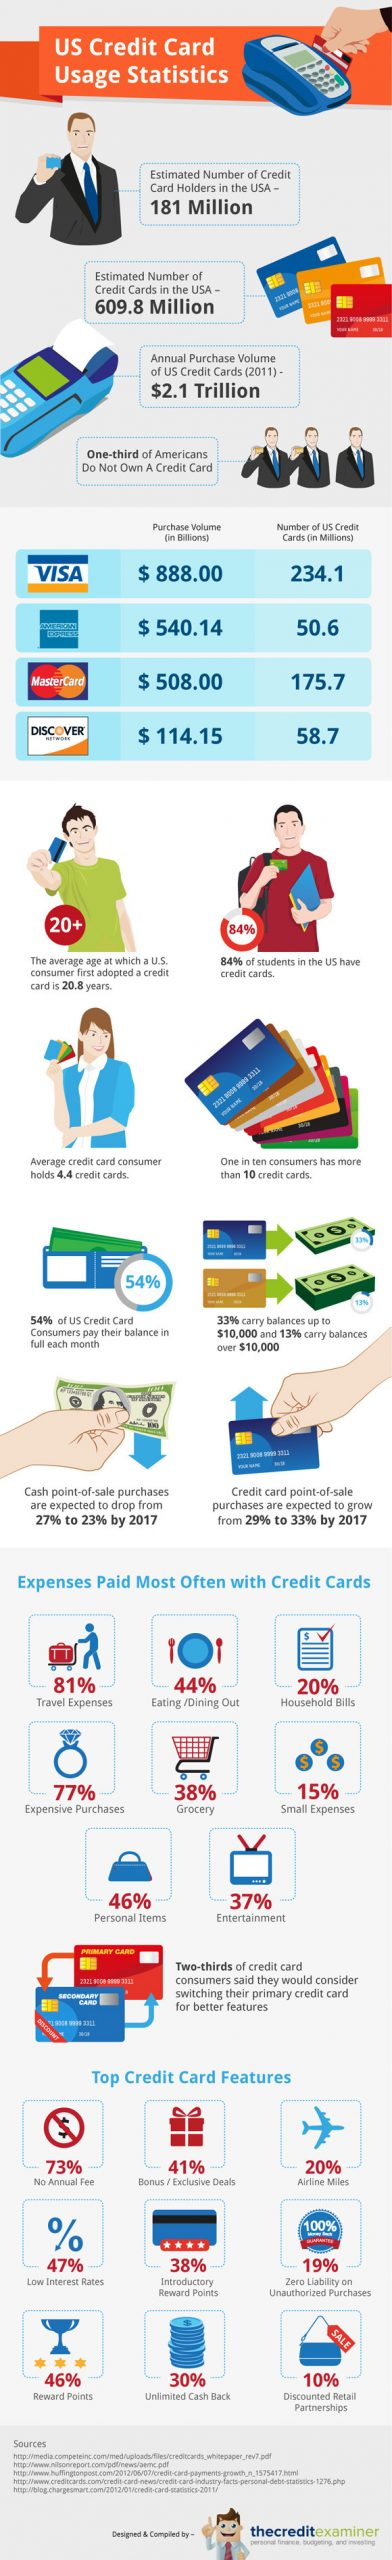 US Credit Card Usage Statistics